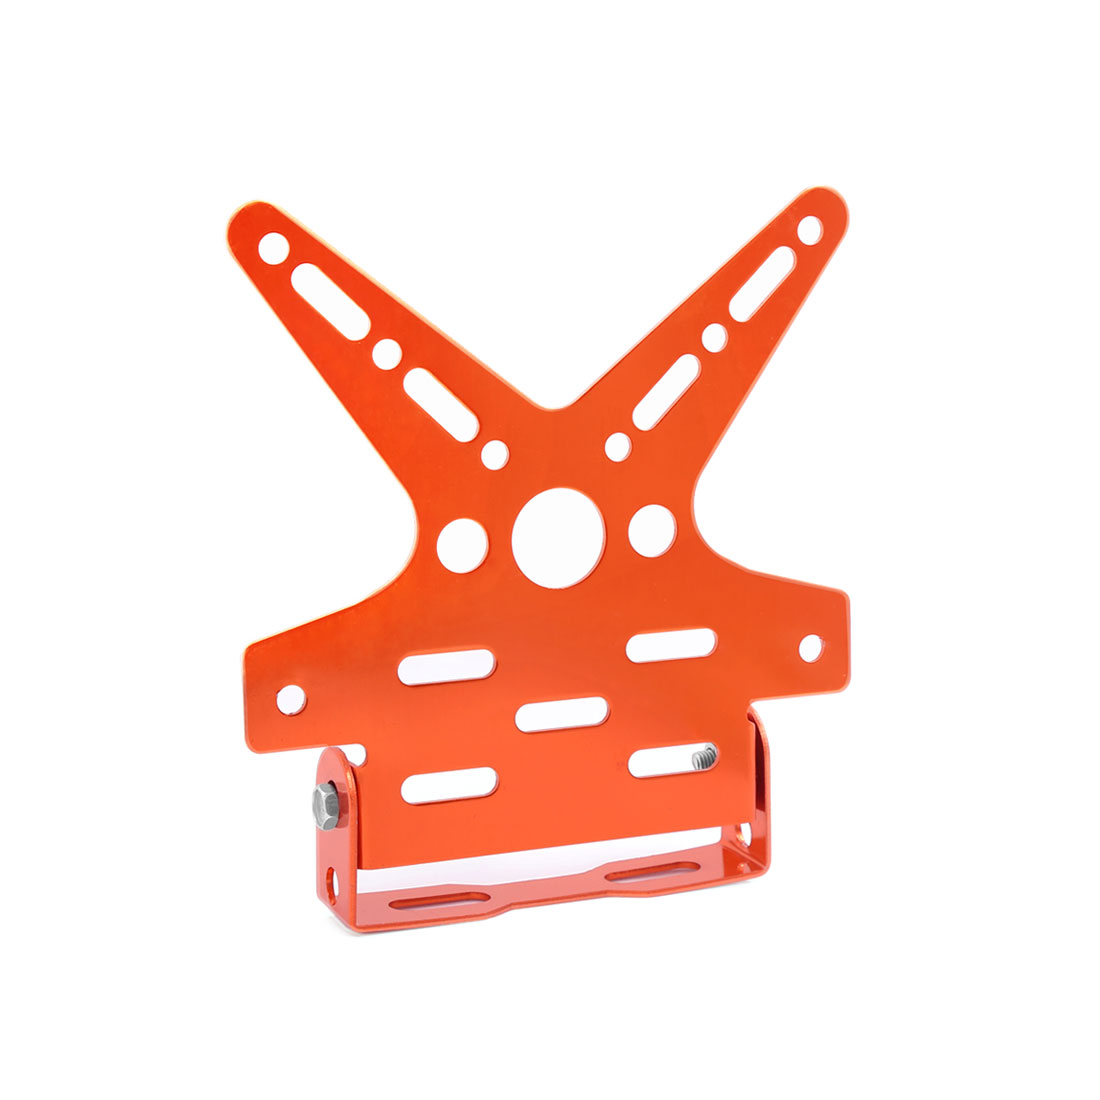 Motorbike Aluminum Alloy Swallow Tail Shaped License Plate Bracket Holder Orange